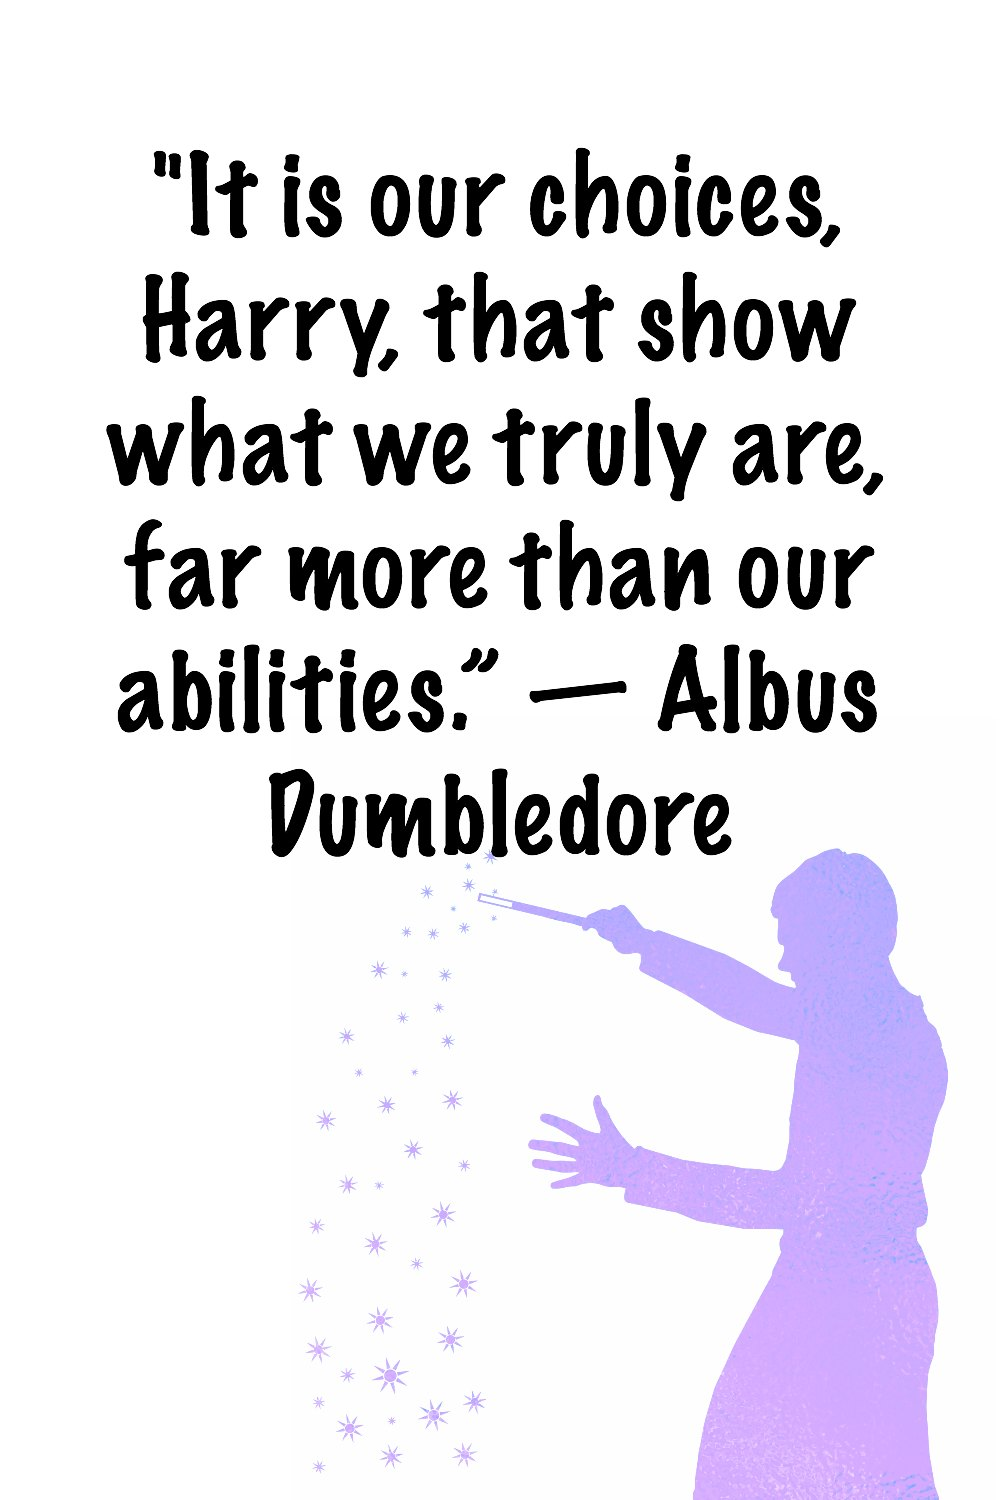 image relating to Printable Harry Potter Quotes known as Printable Harry Potter estimates - Millennial Manager